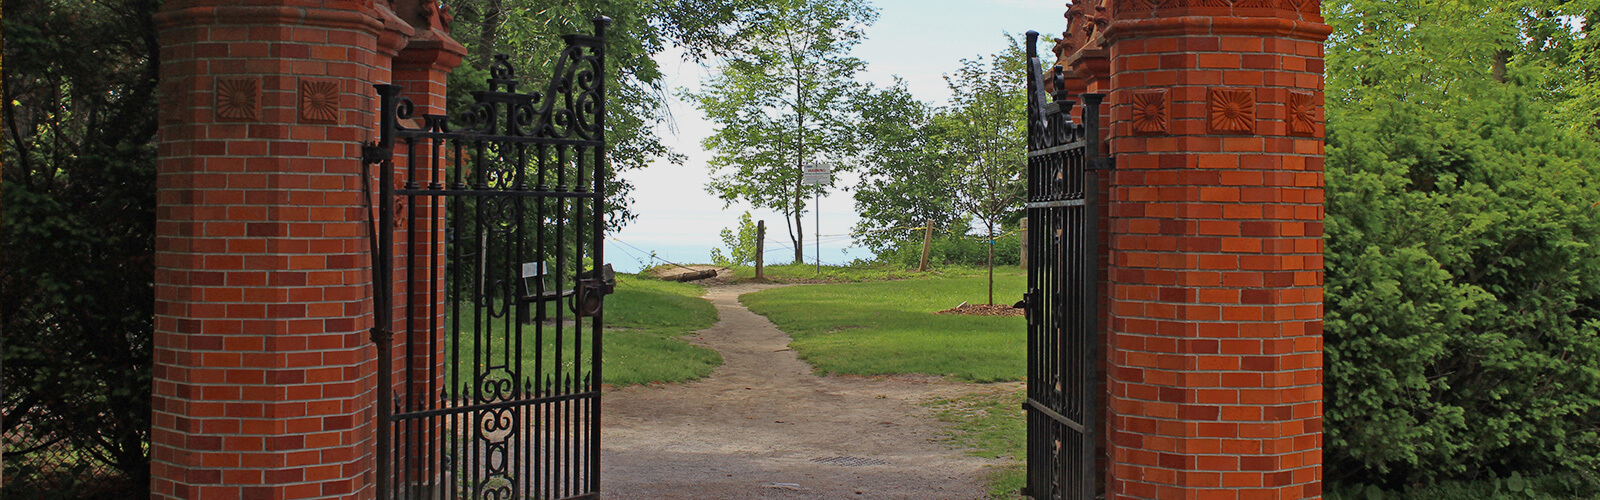 An open old looking and ornate red brick and wrought iron gate leading down a small dirt path toward a cliff edge. Lake Ontario can be seen in the background. Lush trees sit on either side of the gate.